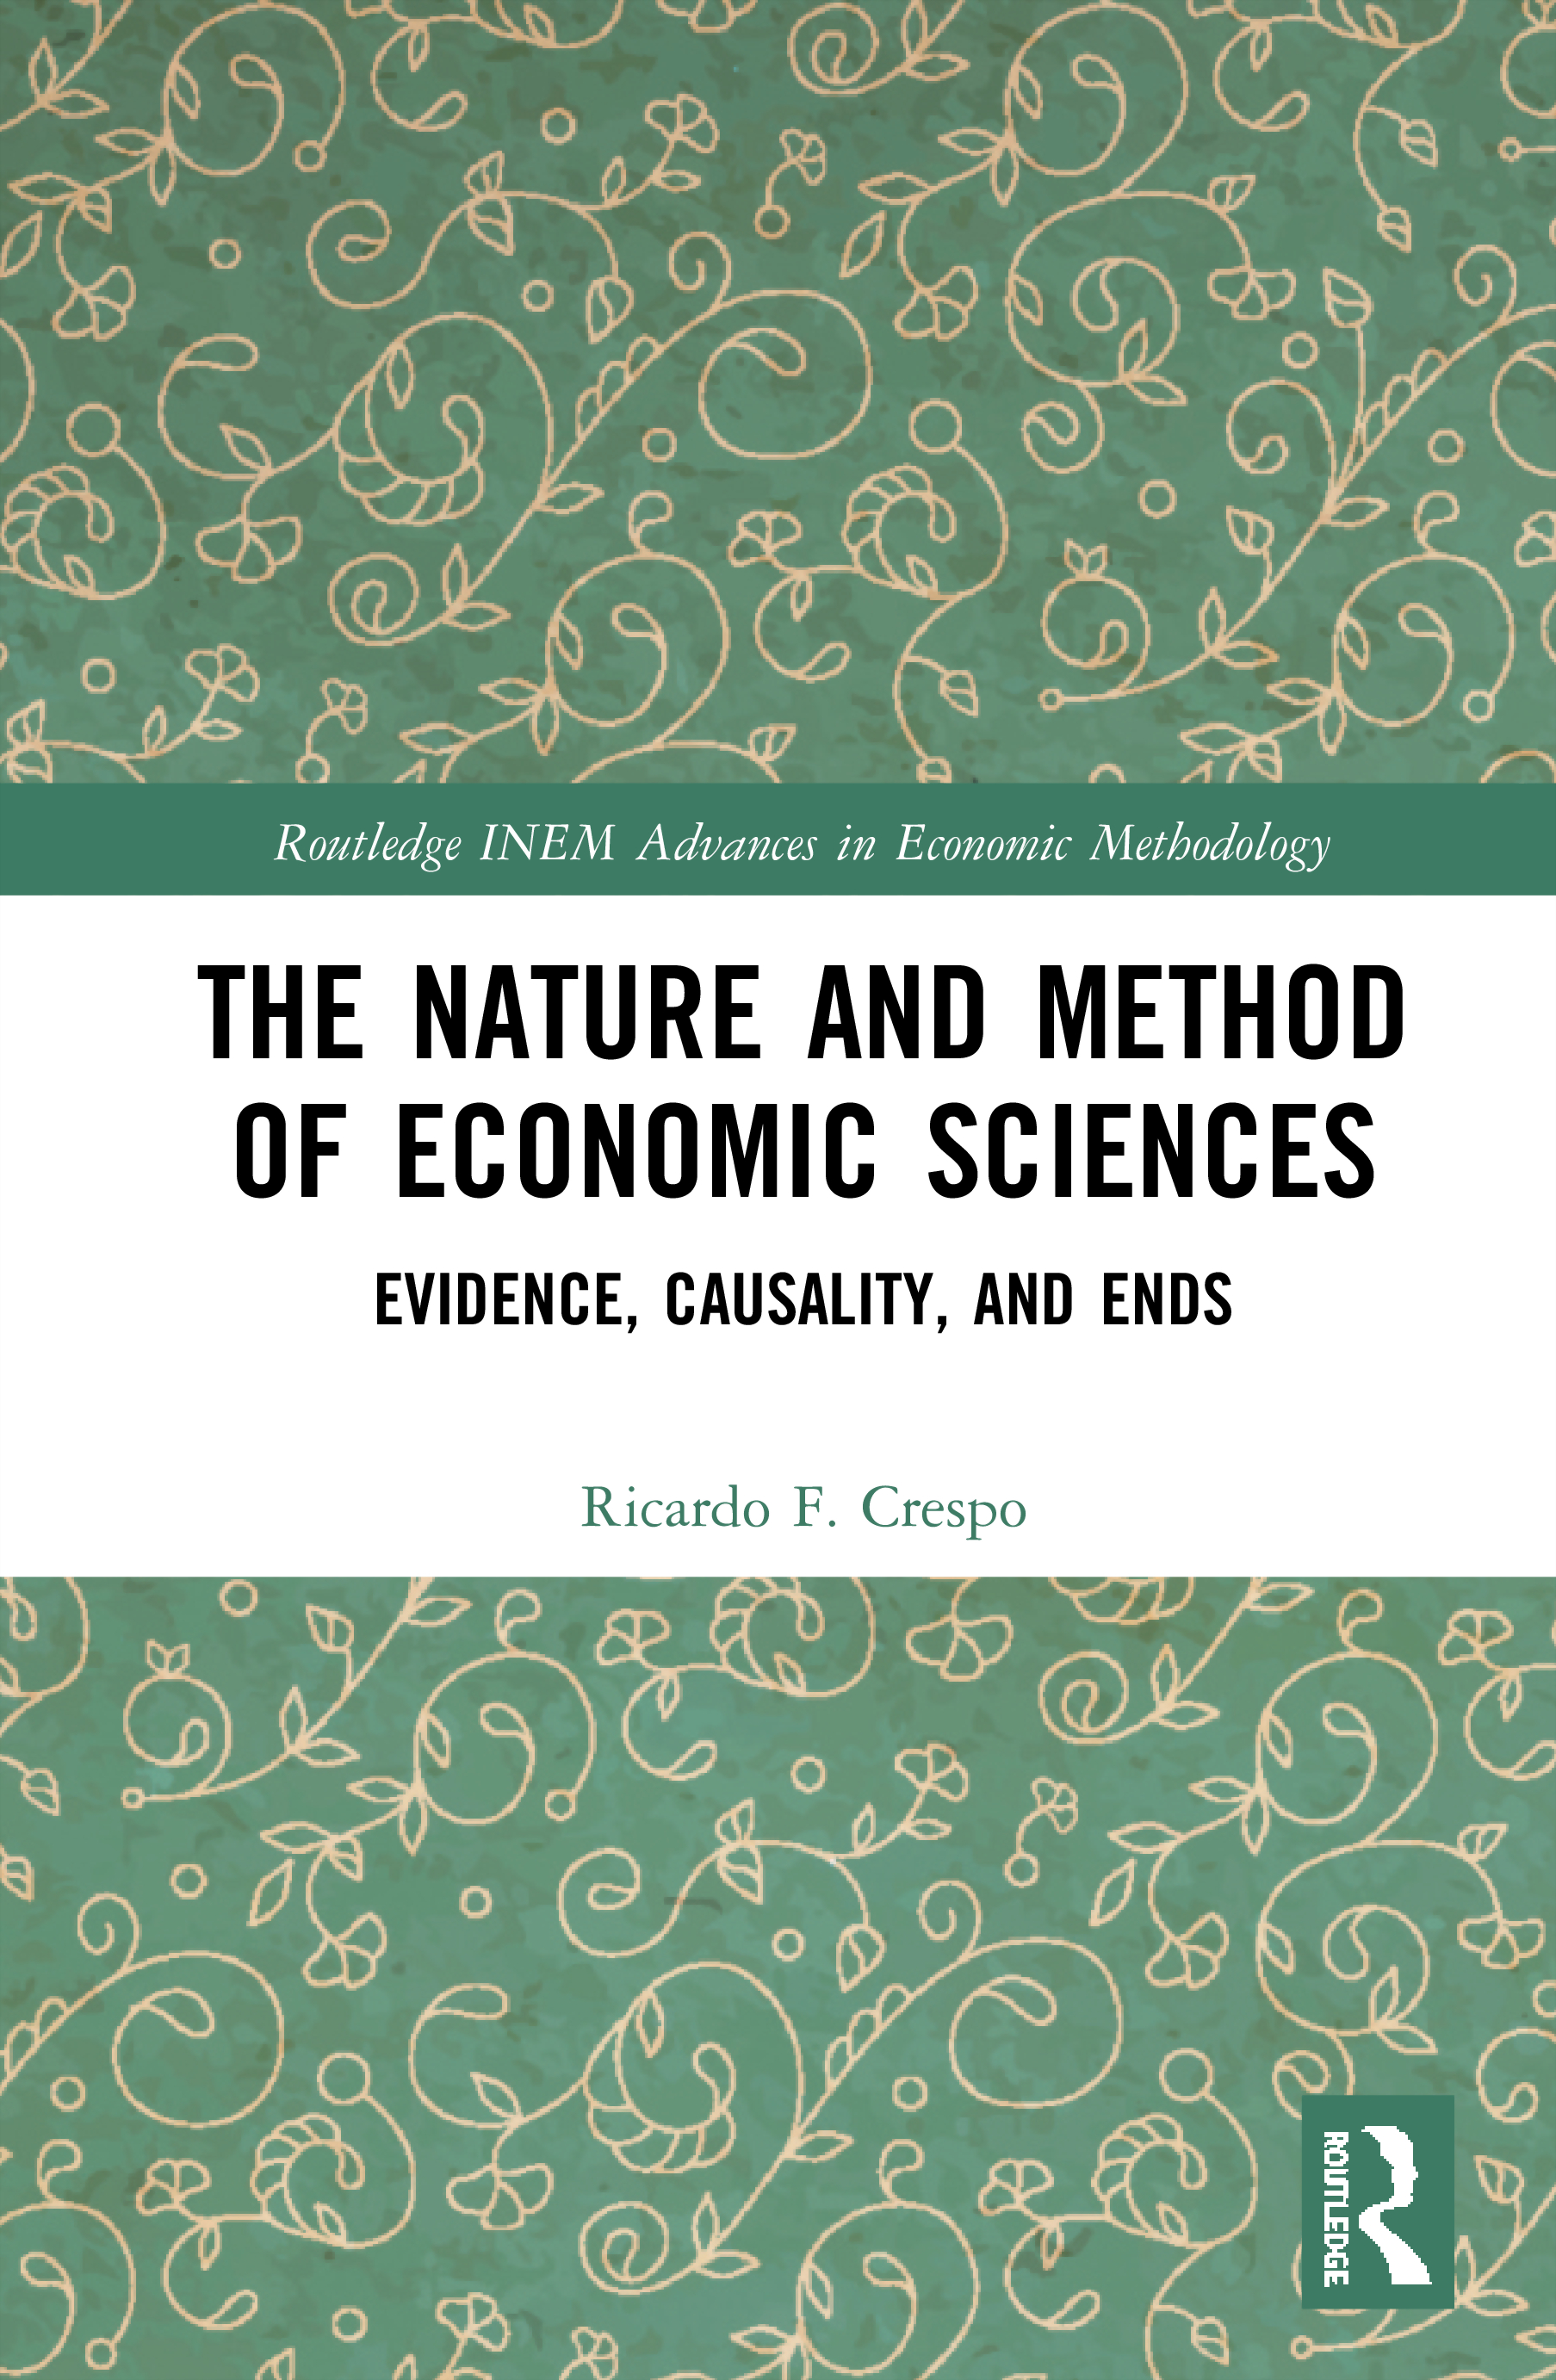 The Nature and Method of Economic Sciences: Evidence, Causality, and Ends book cover